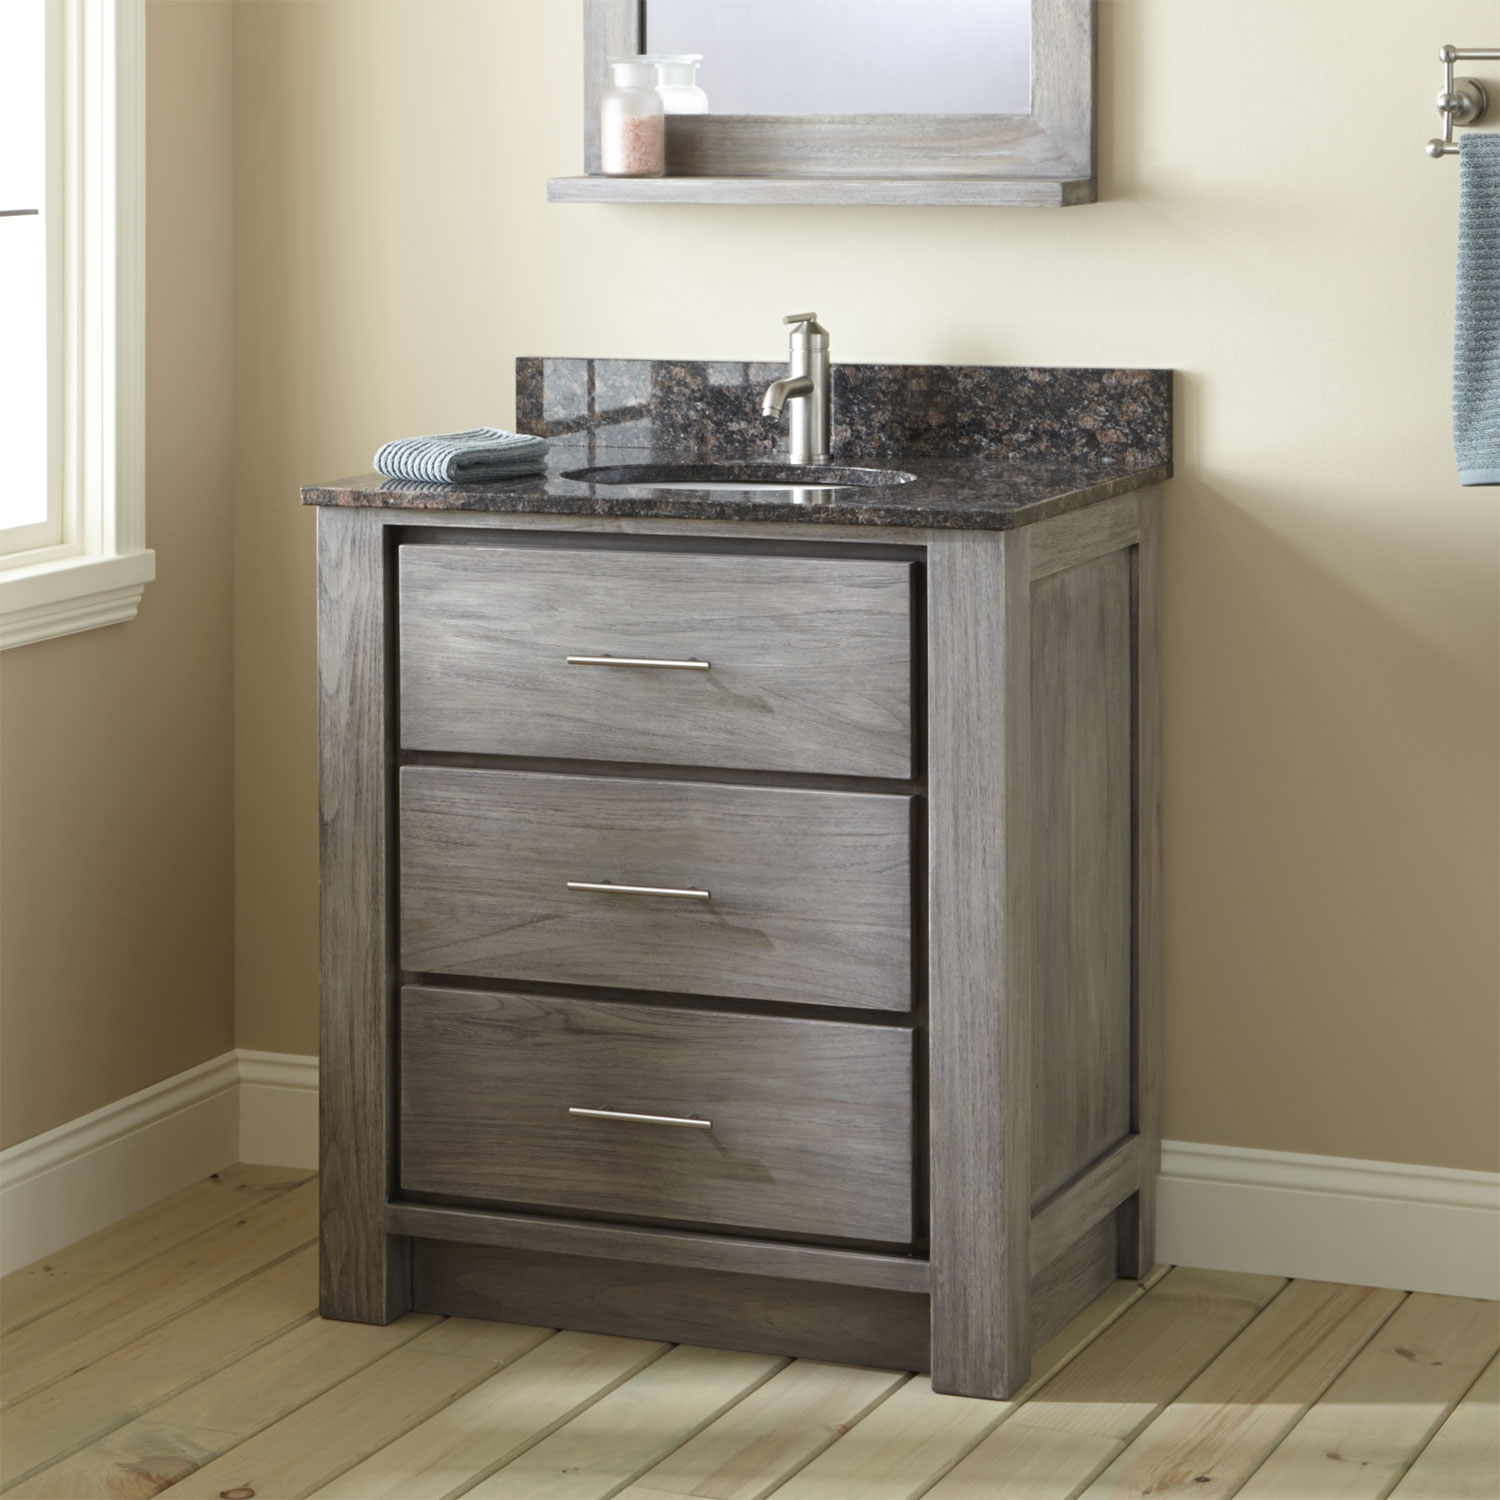 30 Inch Bathroom Vanity With Drawers Only